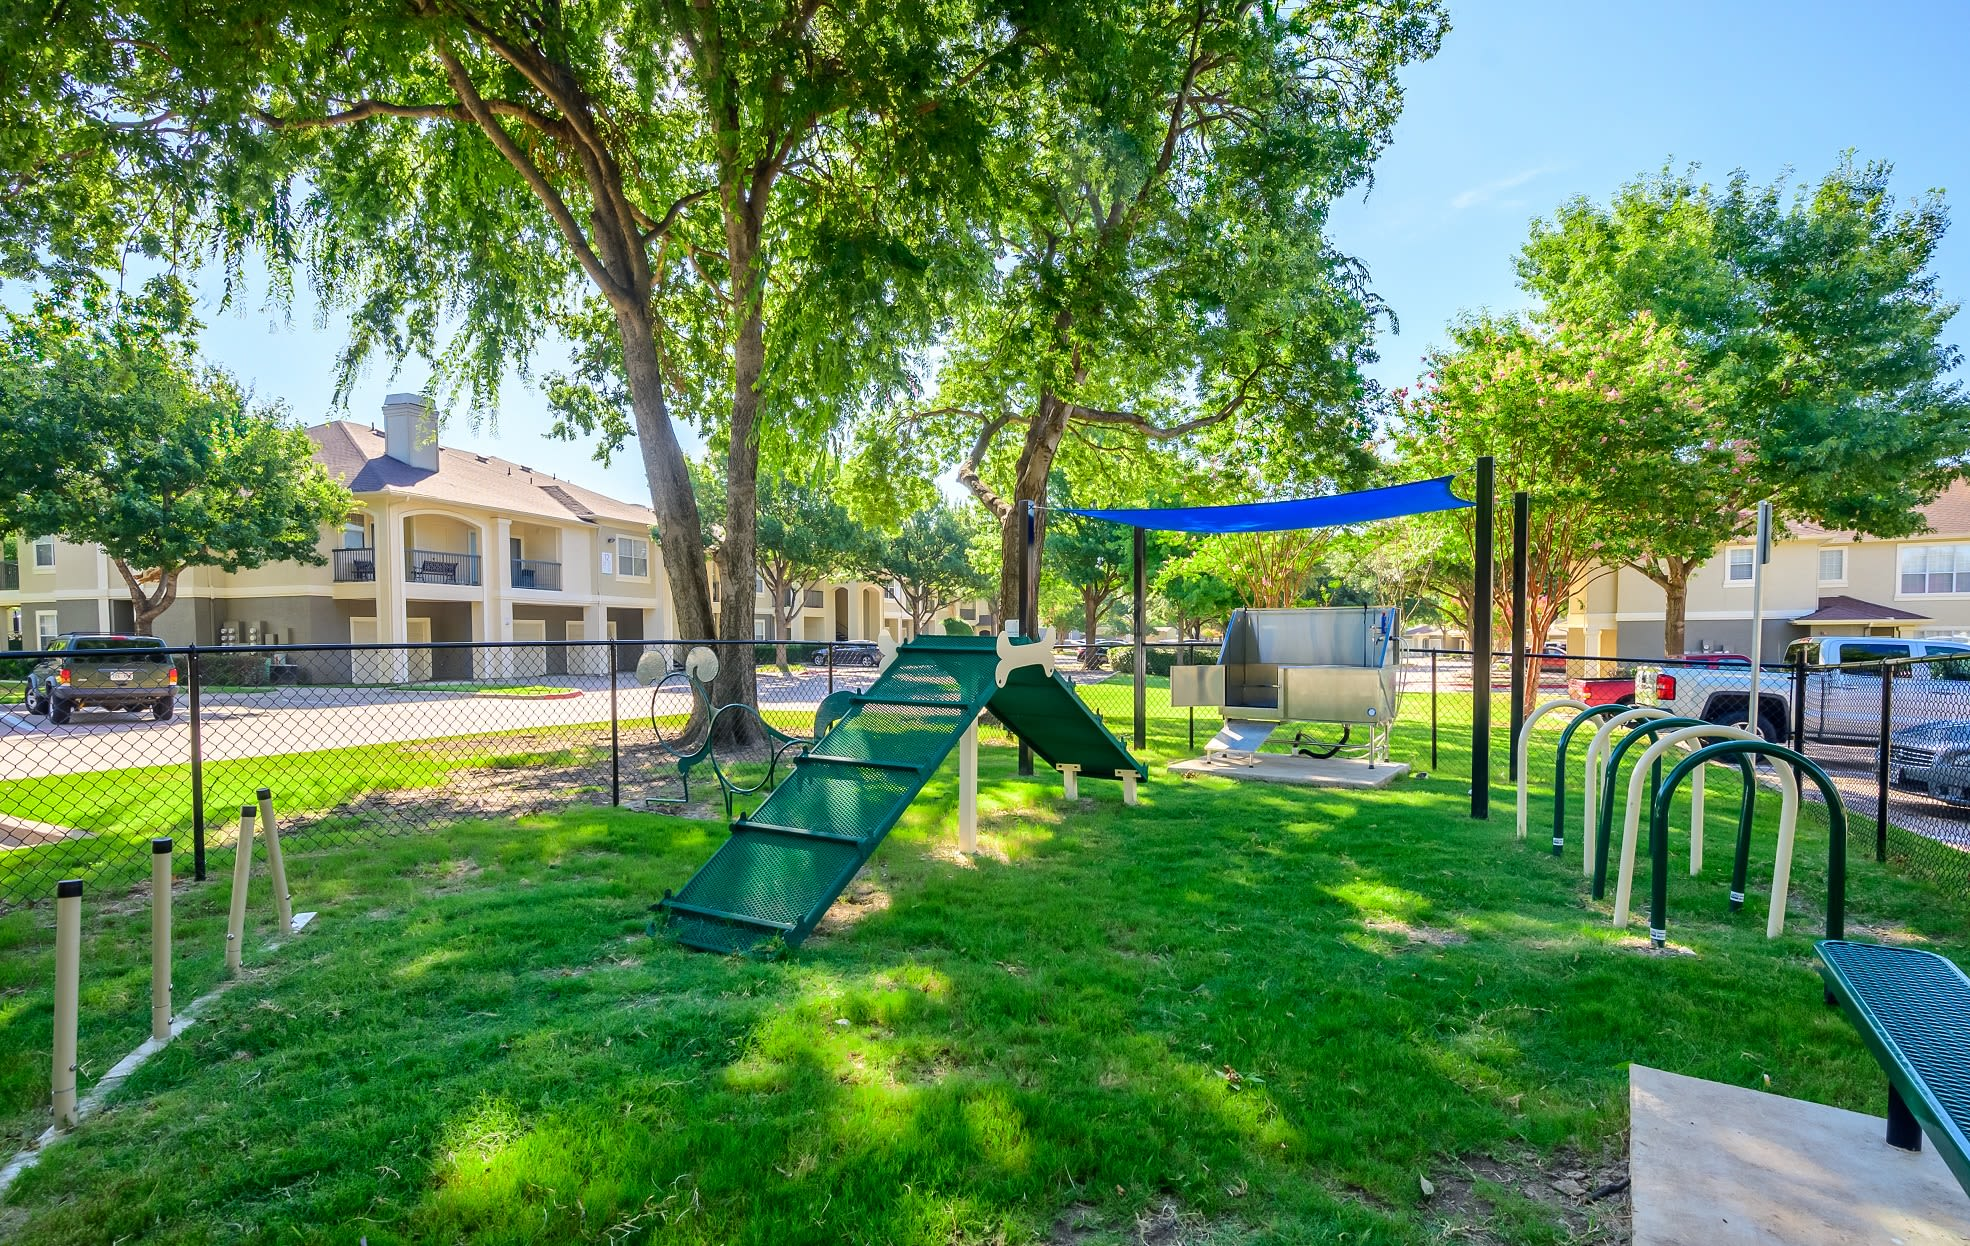 23Hundred @ Ridgeview resident clubhouse in Plano, Texas